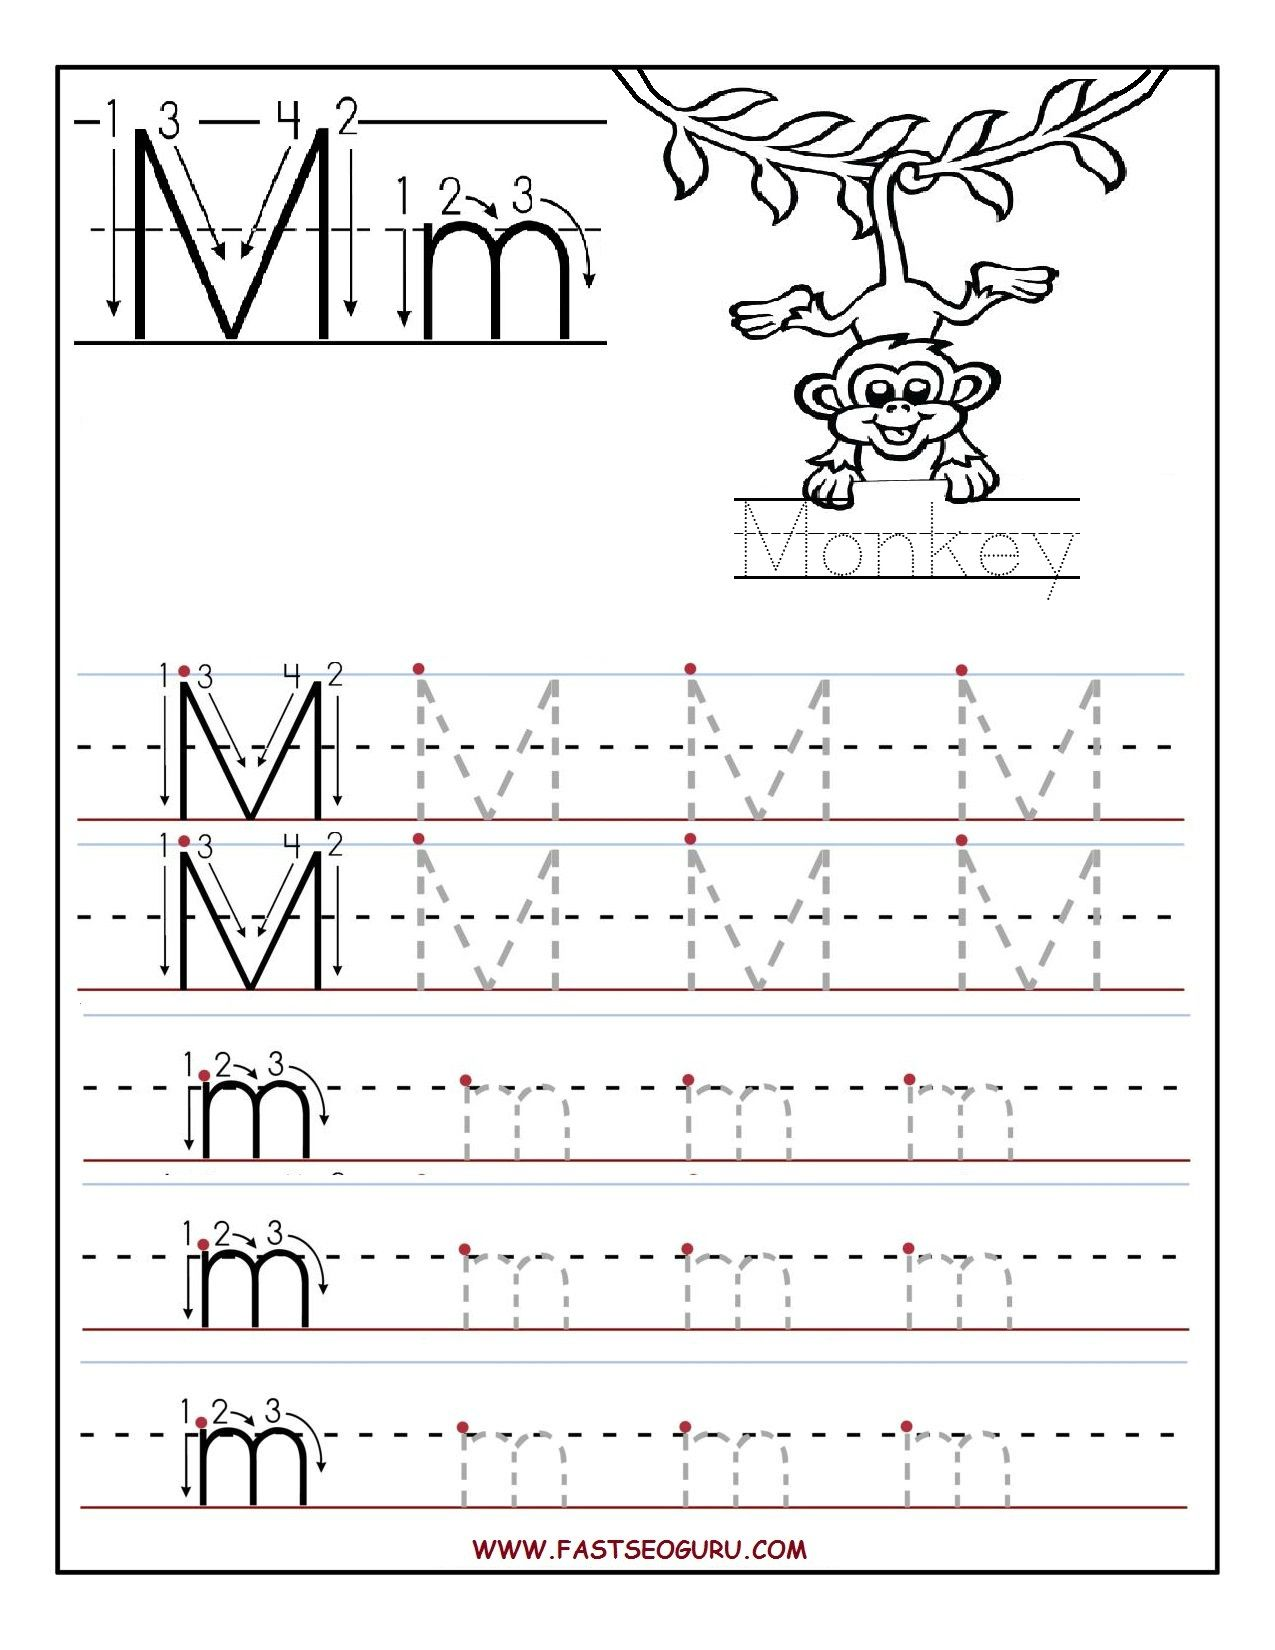 printable letter m tracing worksheets for preschool bobbi likes this printable preschool. Black Bedroom Furniture Sets. Home Design Ideas